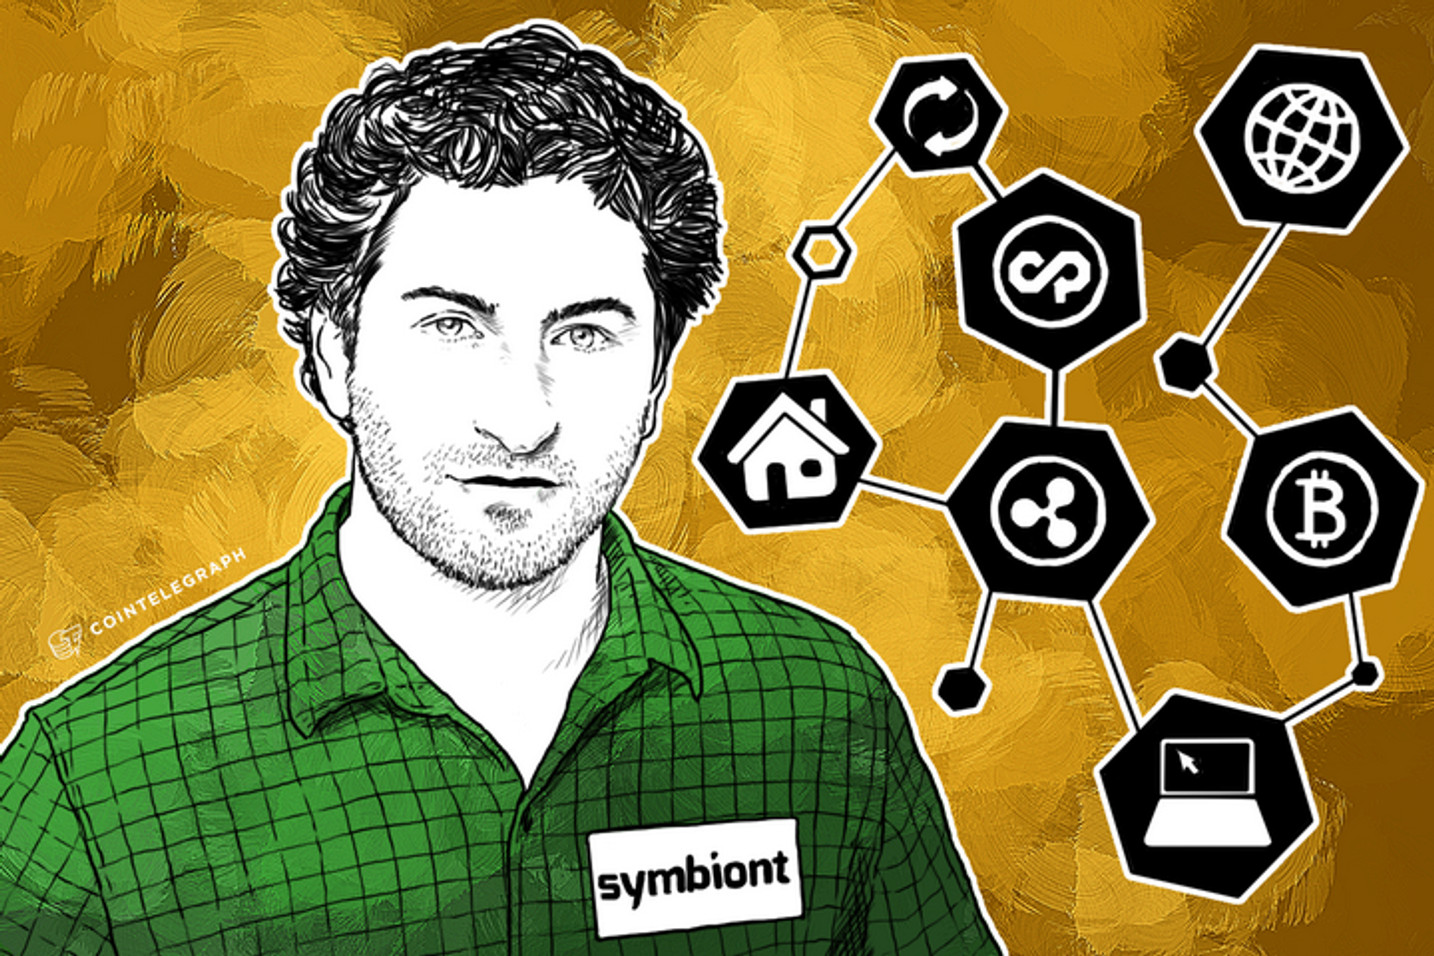 Symbiont Bridges Bitcoin and Ripple with Counterparty Gateway